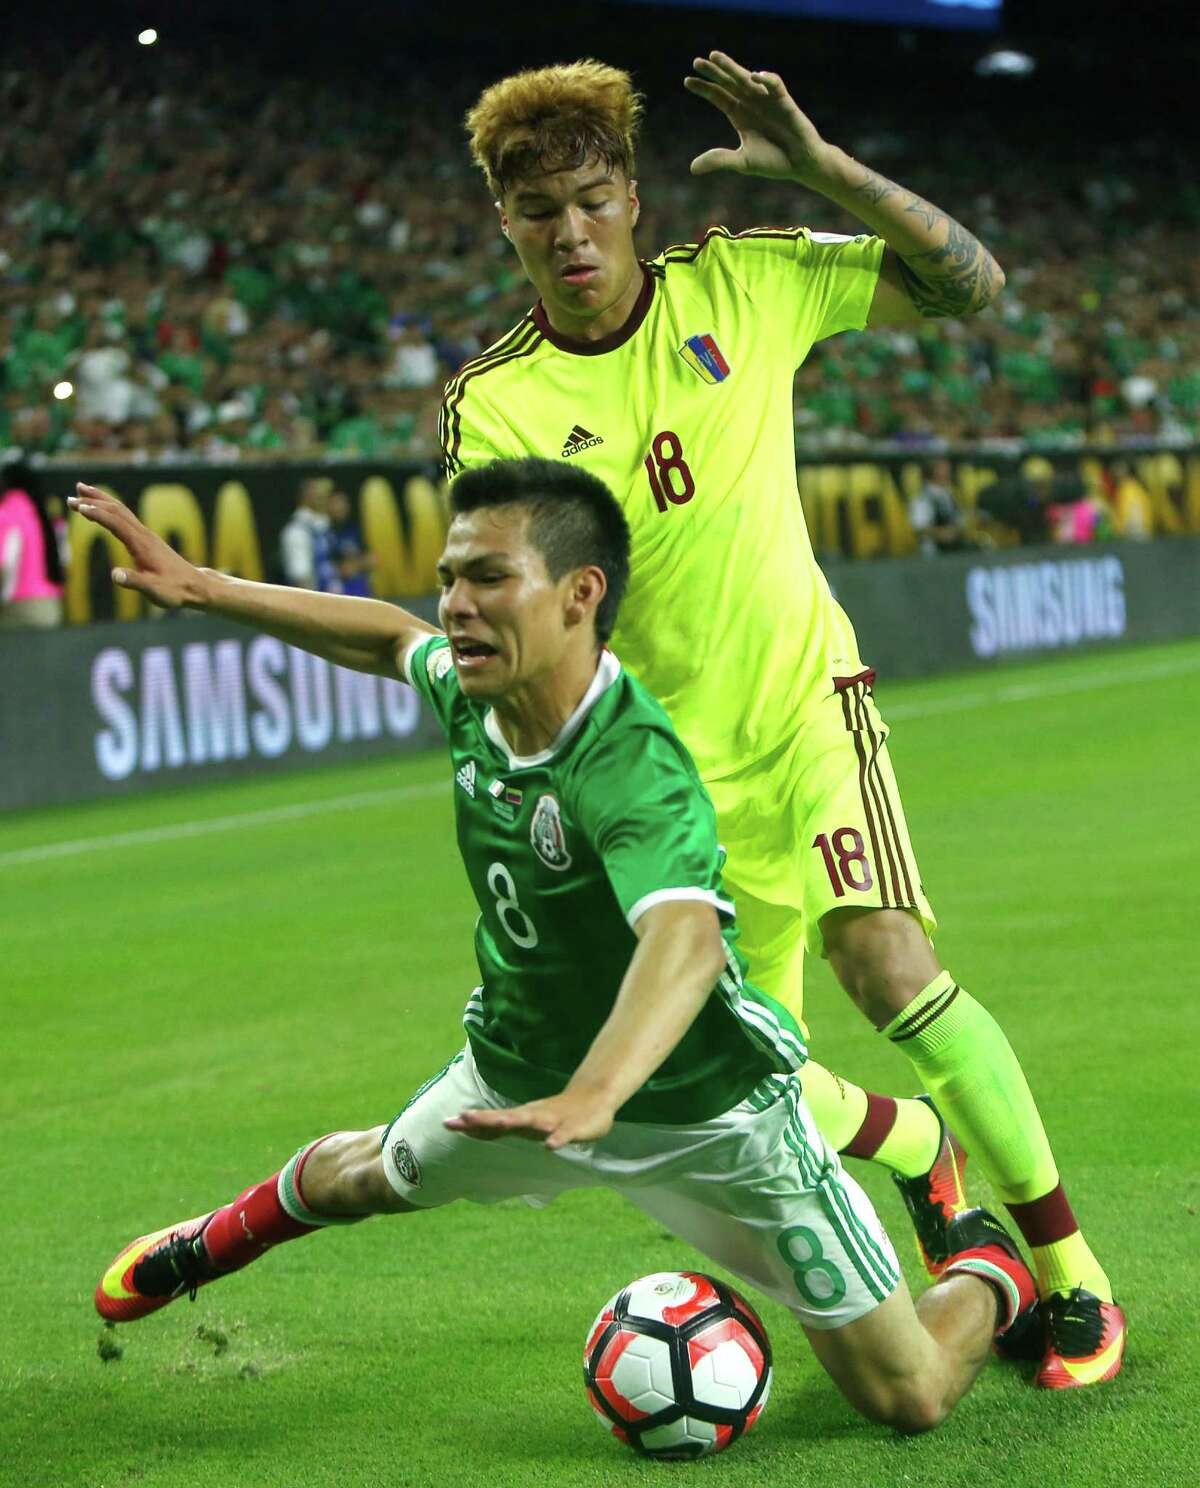 Mexico midfielder Hirving Lozano (8) is knocked to the field by Venezuela midfielder Adalberto Penaranta (18) as they chase the ball toward the end line during the second half of a Copa America Centenario group C soccer match on Monday, June 13, 2016, in Houston. The match ened in a 1-1 draw.